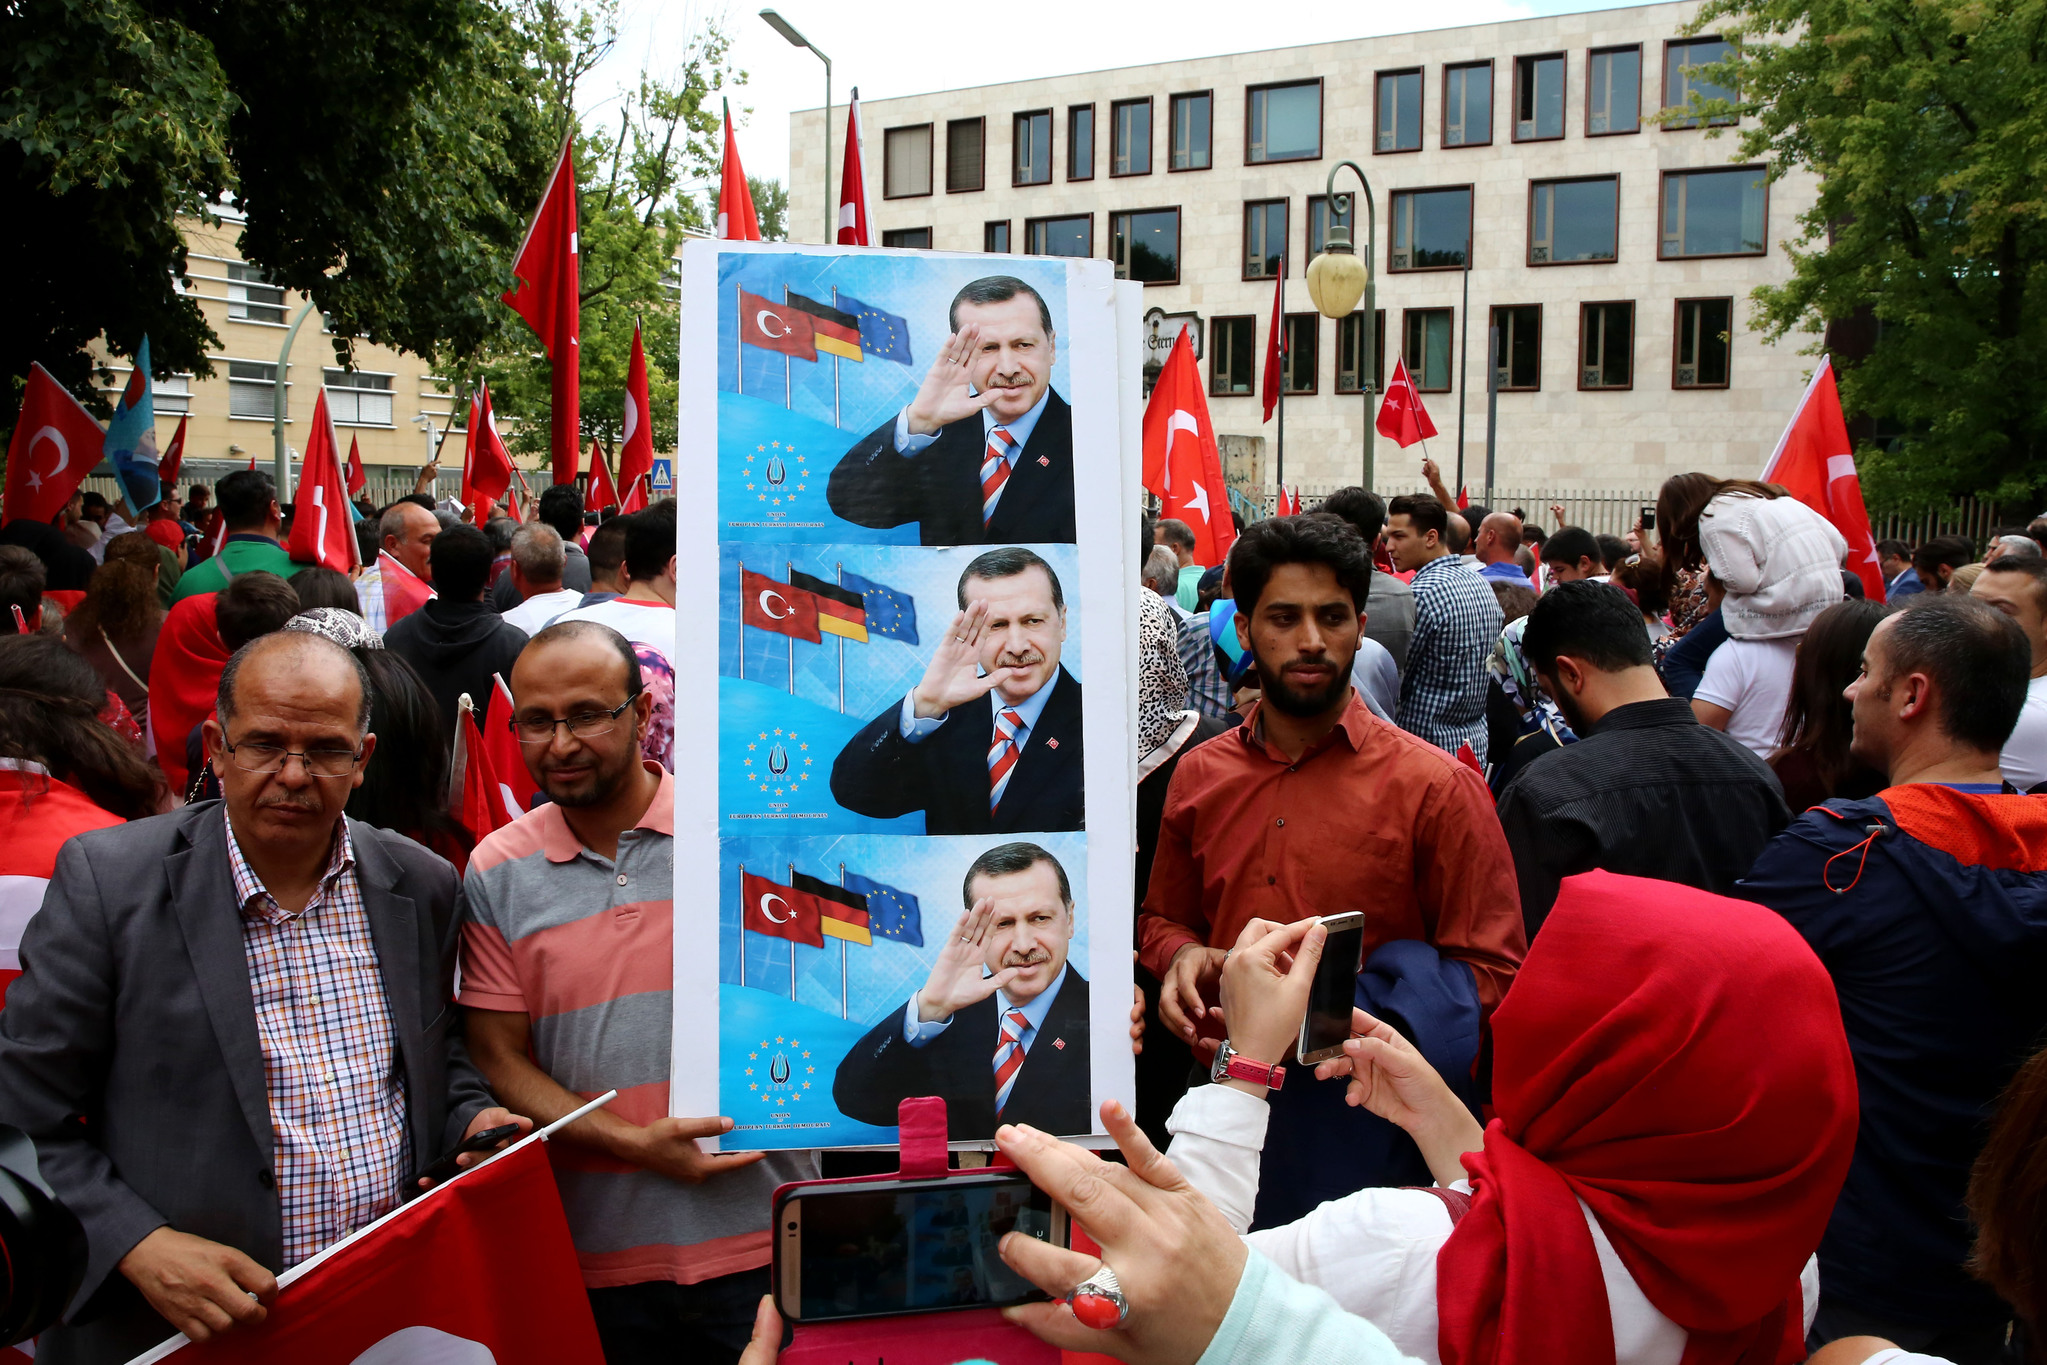 Demonstrators with Turkish flags at a demonstration against the failed attempted coup in Turkey, outside the Turkish embassy in Berlin, Germany, 16 July 2016.